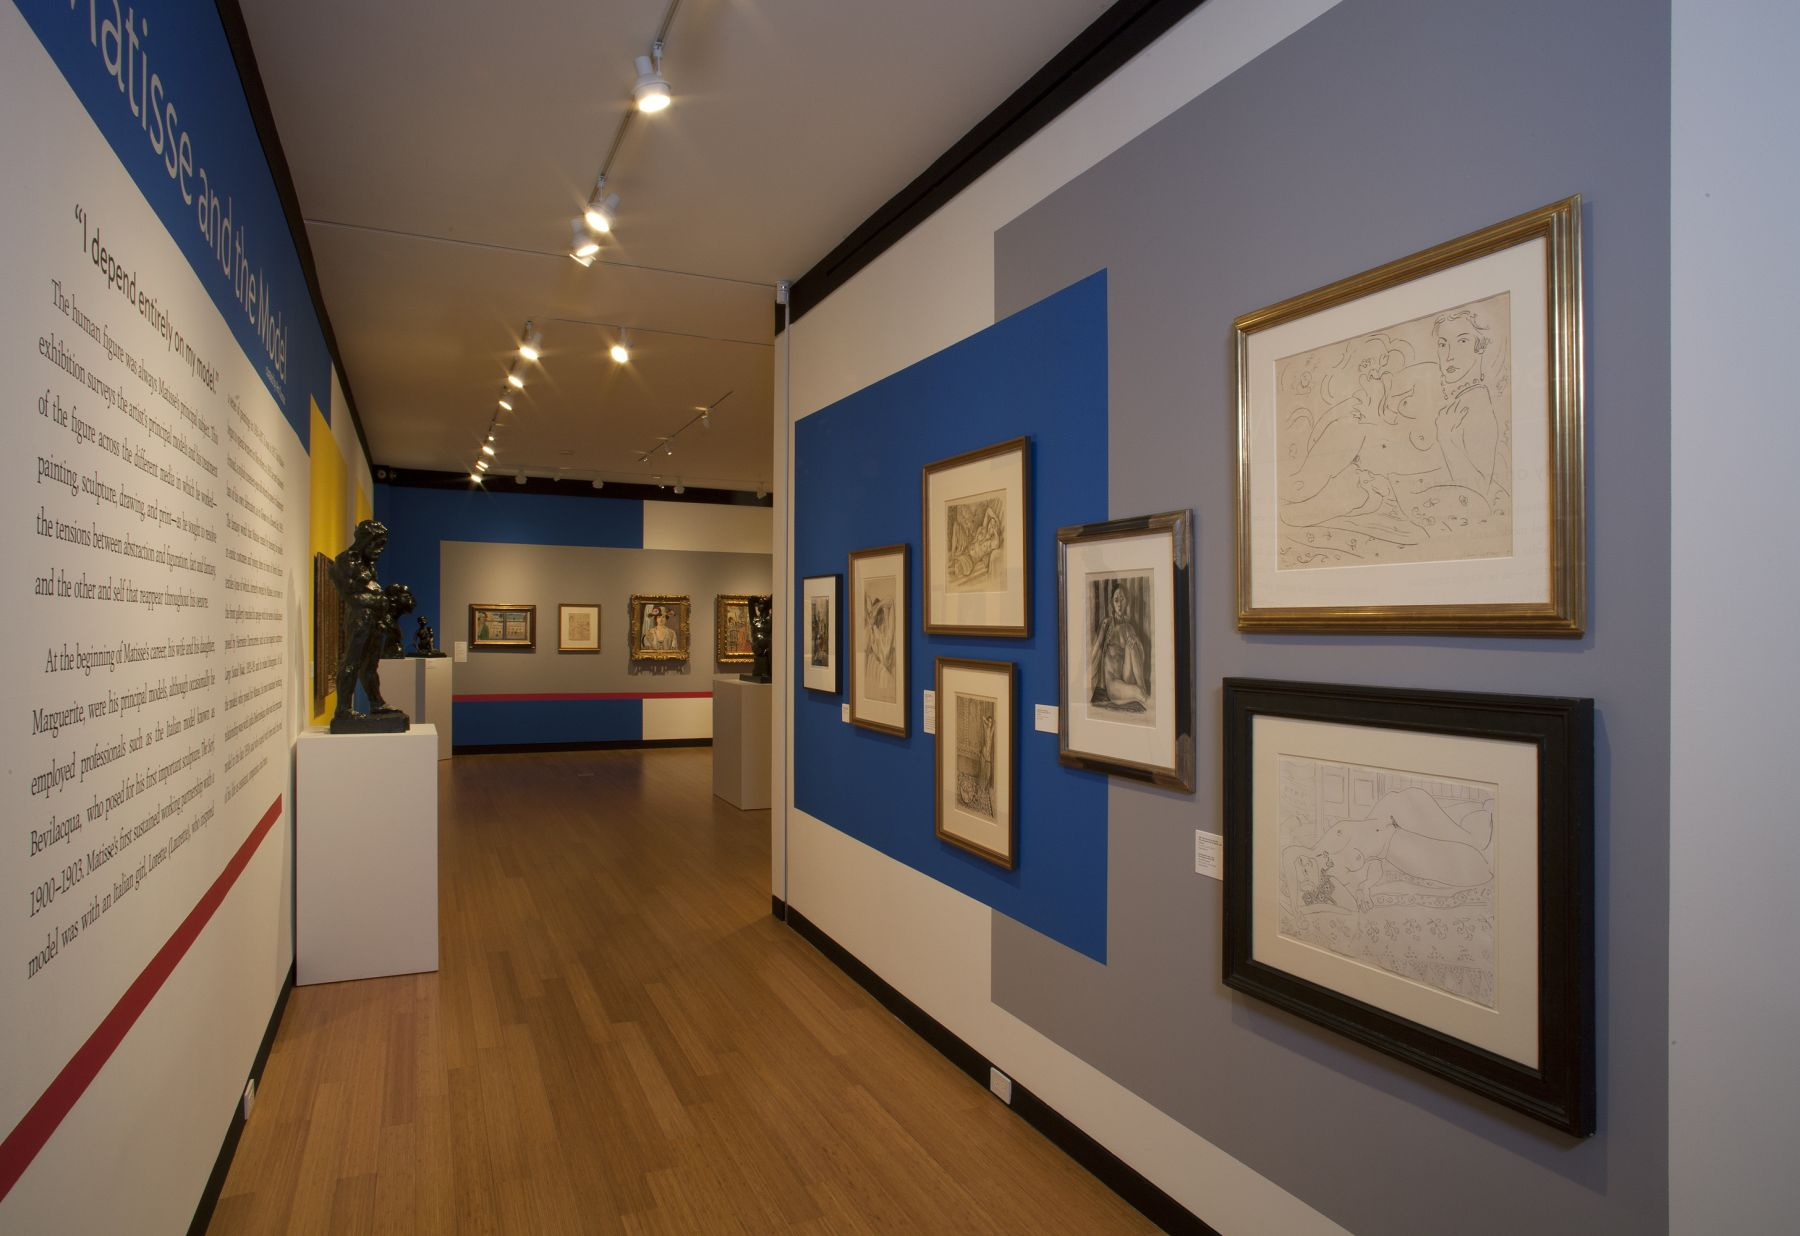 All artwork by Henri Matisse © 2011 Succession H. Matisse/Artists Rights Society (ARS), New York